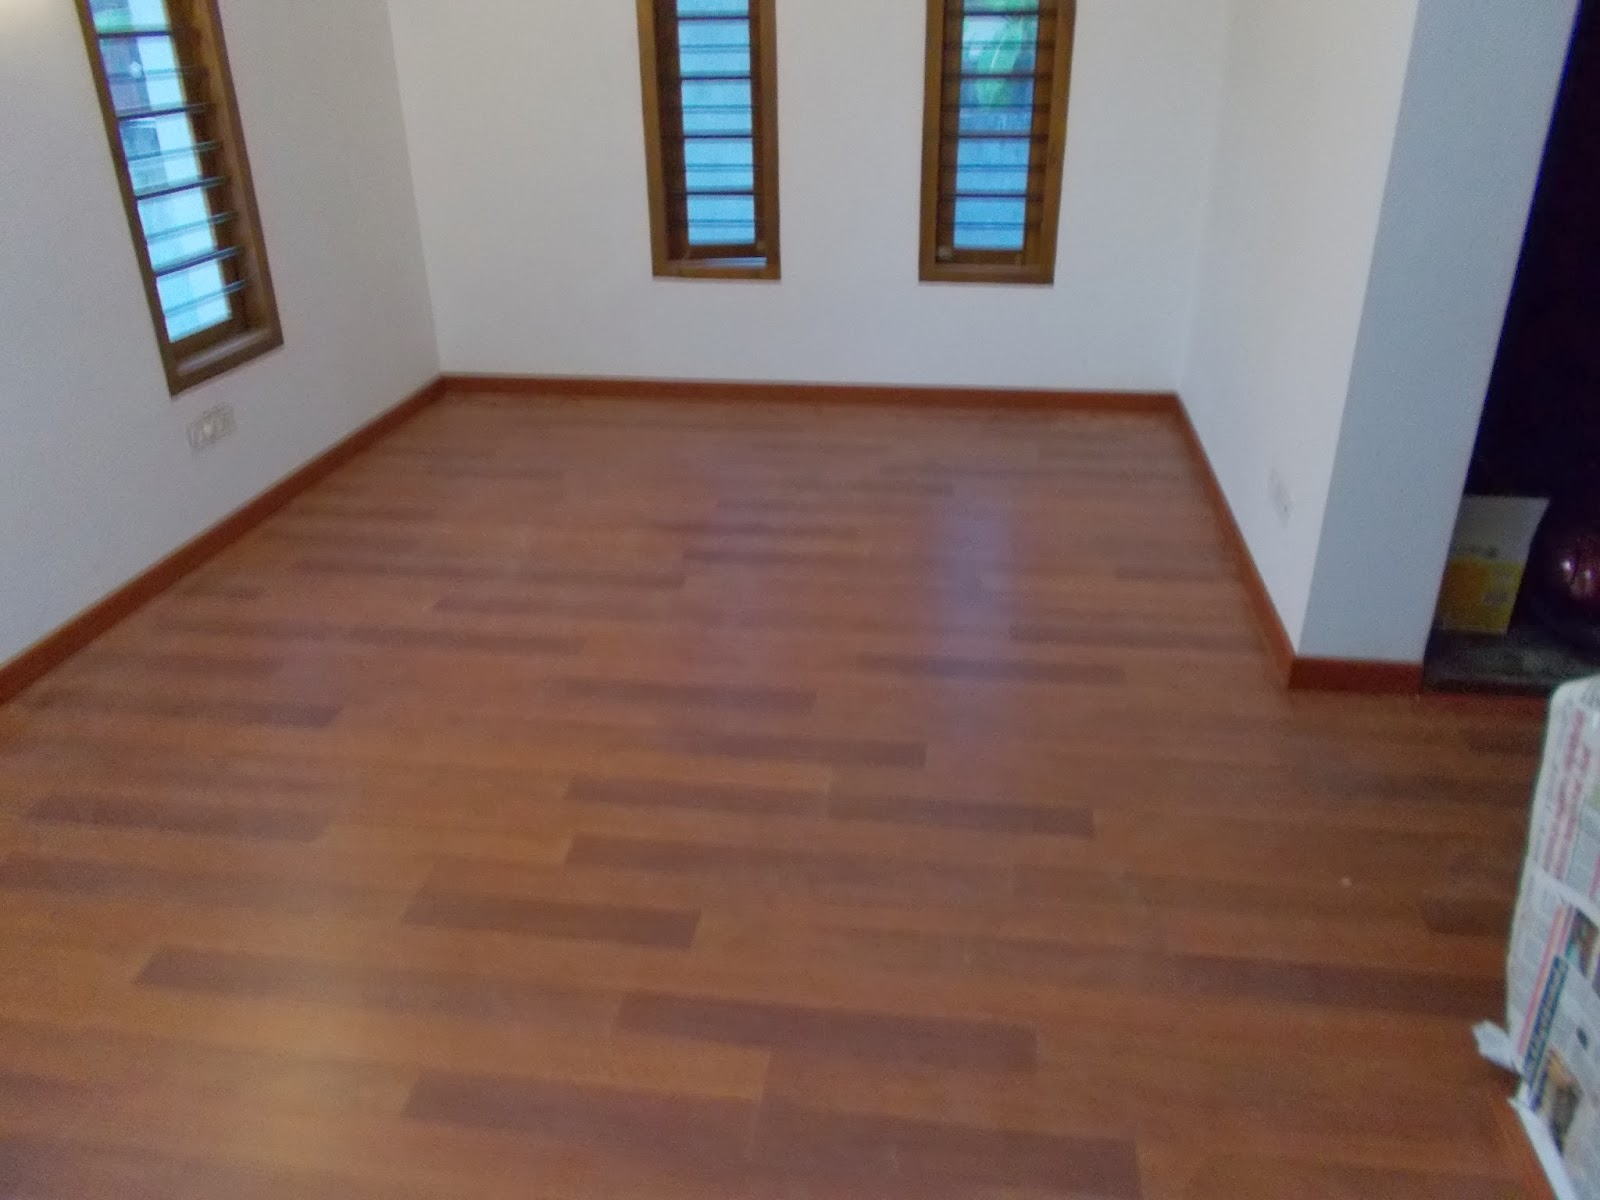 LAMINATED WOODEN FLOORING   MERBAU WOODEN FLOORING AT KOLLAM IN     LAMINATED WOODEN FLOORING   MERBAU WOODEN FLOORING AT KOLLAM IN KERALA